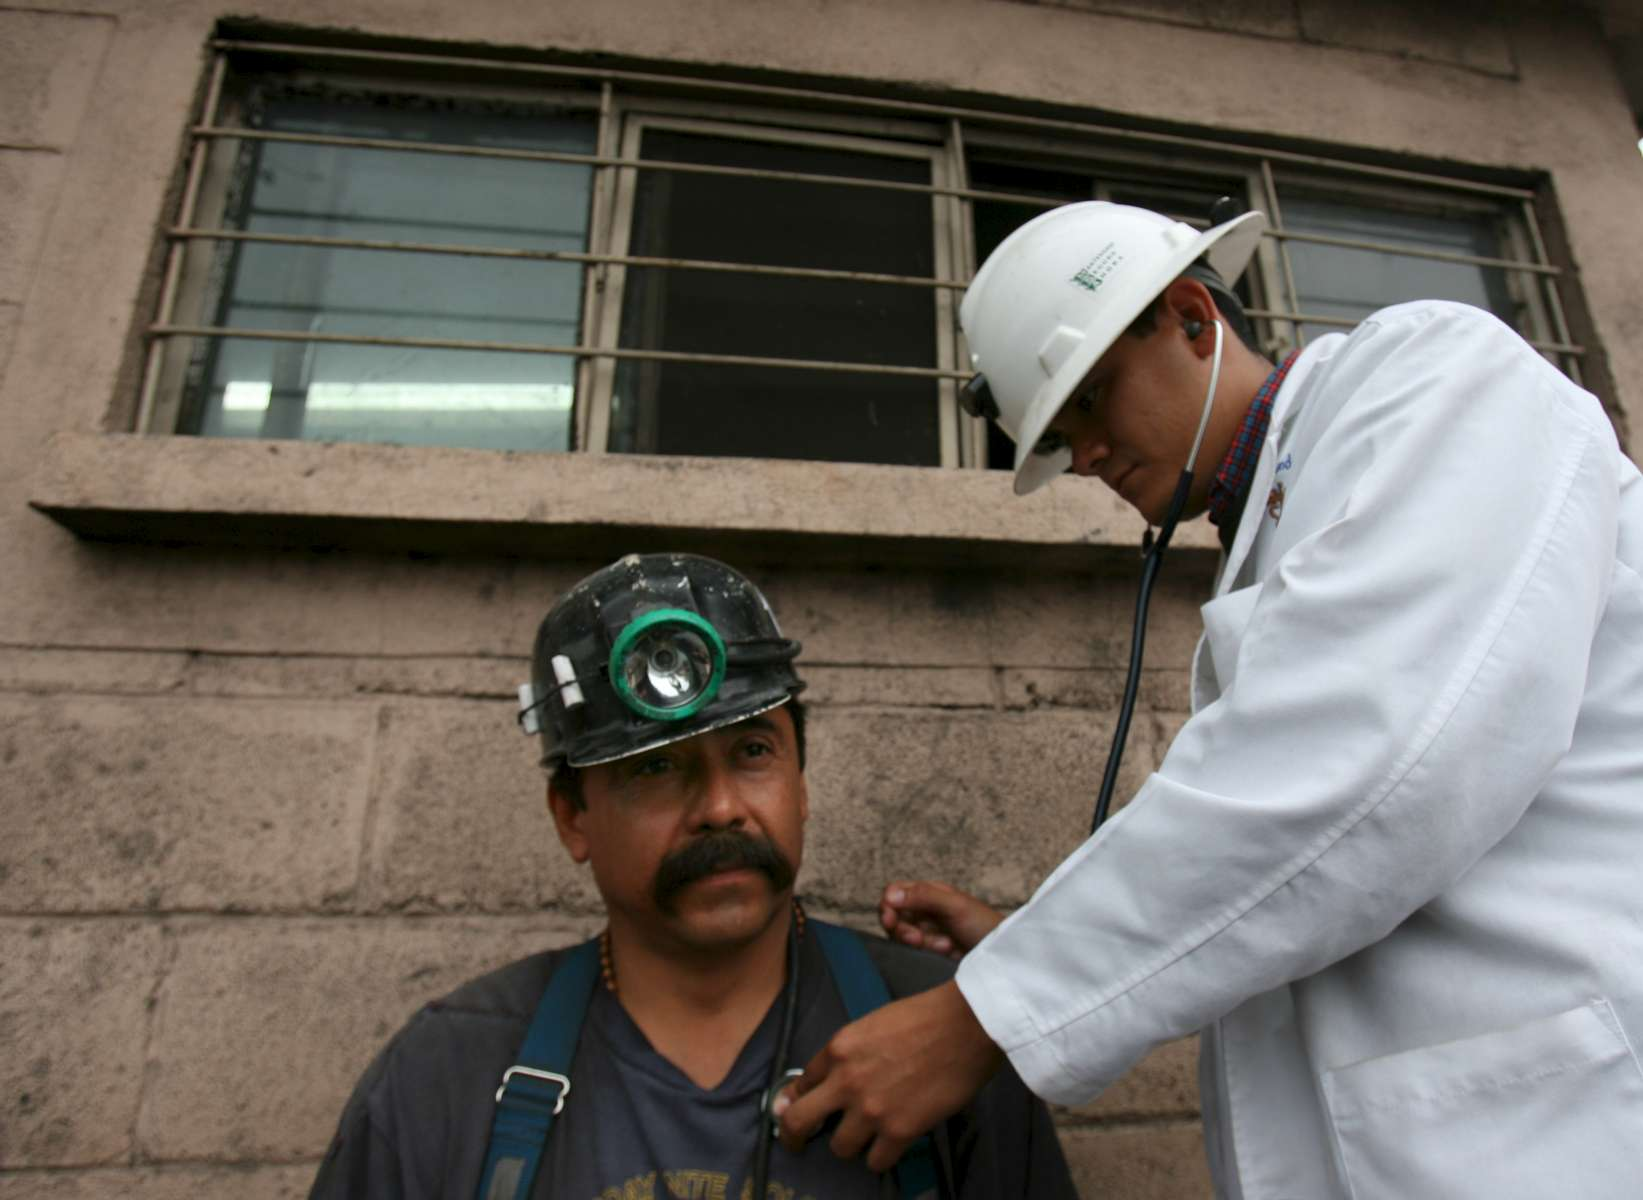 Rolando Javier Valero undergoes his morning medical exam with doctor Edmundo Mena of Torreon, Mexico (accent on {quote}o{quote}) at the Pasta de Conchos coal mine in San Juan de Sabinas, Mexico Friday March 17, 2006. His brother, Eliud Valero, is trapped in the mine. In the Early morning on Sunday February 19, 2006 sixty-five miners were trapped as much as 2000 feet below ground after an explosion.Sharon Steinmann / Houston Chronicle